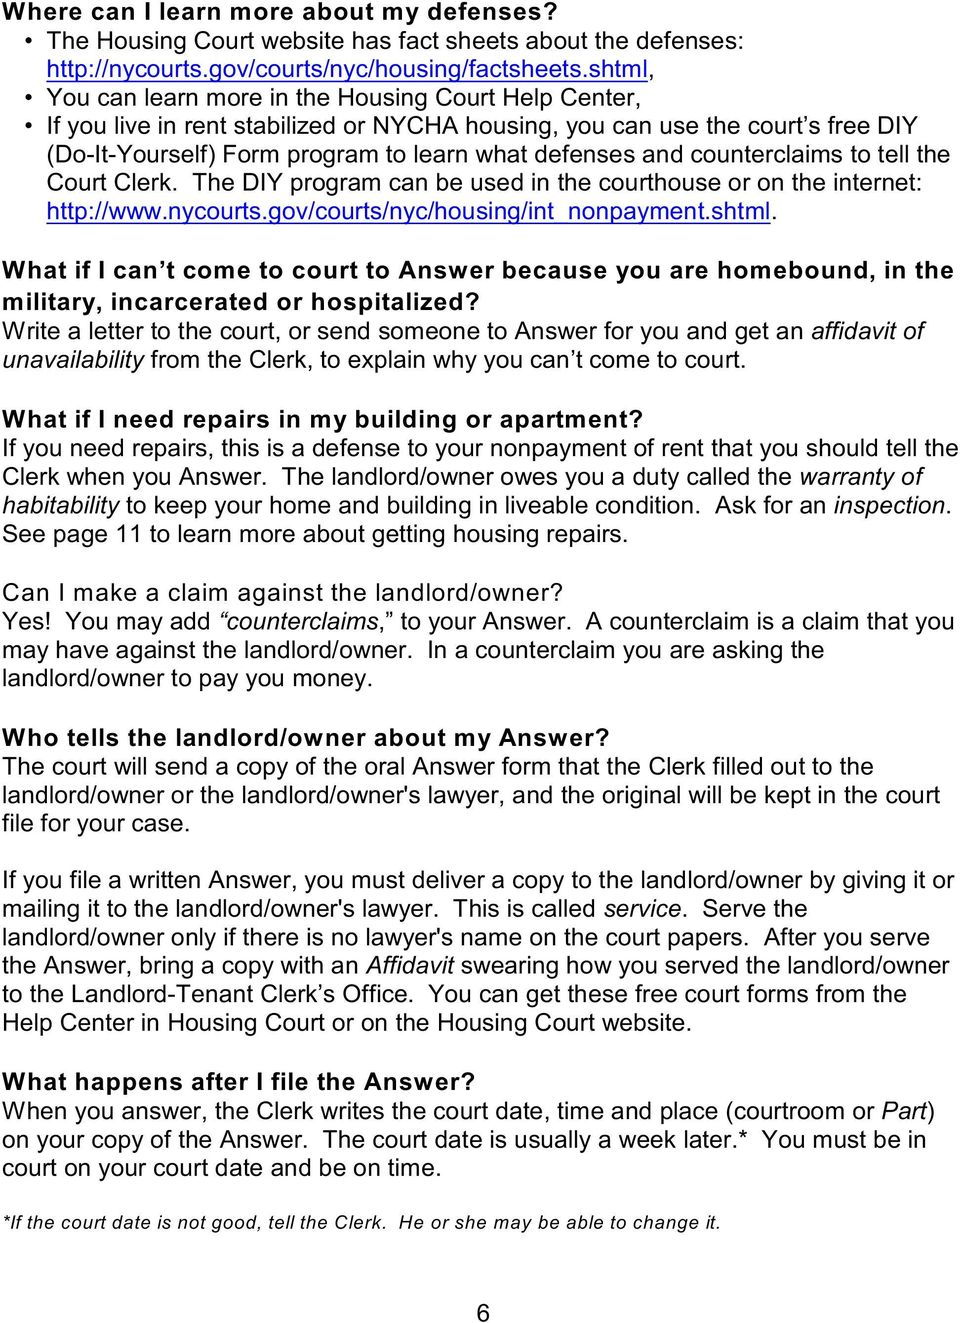 counterclaims to tell the Court Clerk. The DIY program can be used in the courthouse or on the internet: http://www.nycourts.gov/courts/nyc/housing/int_nonpayment.shtml.